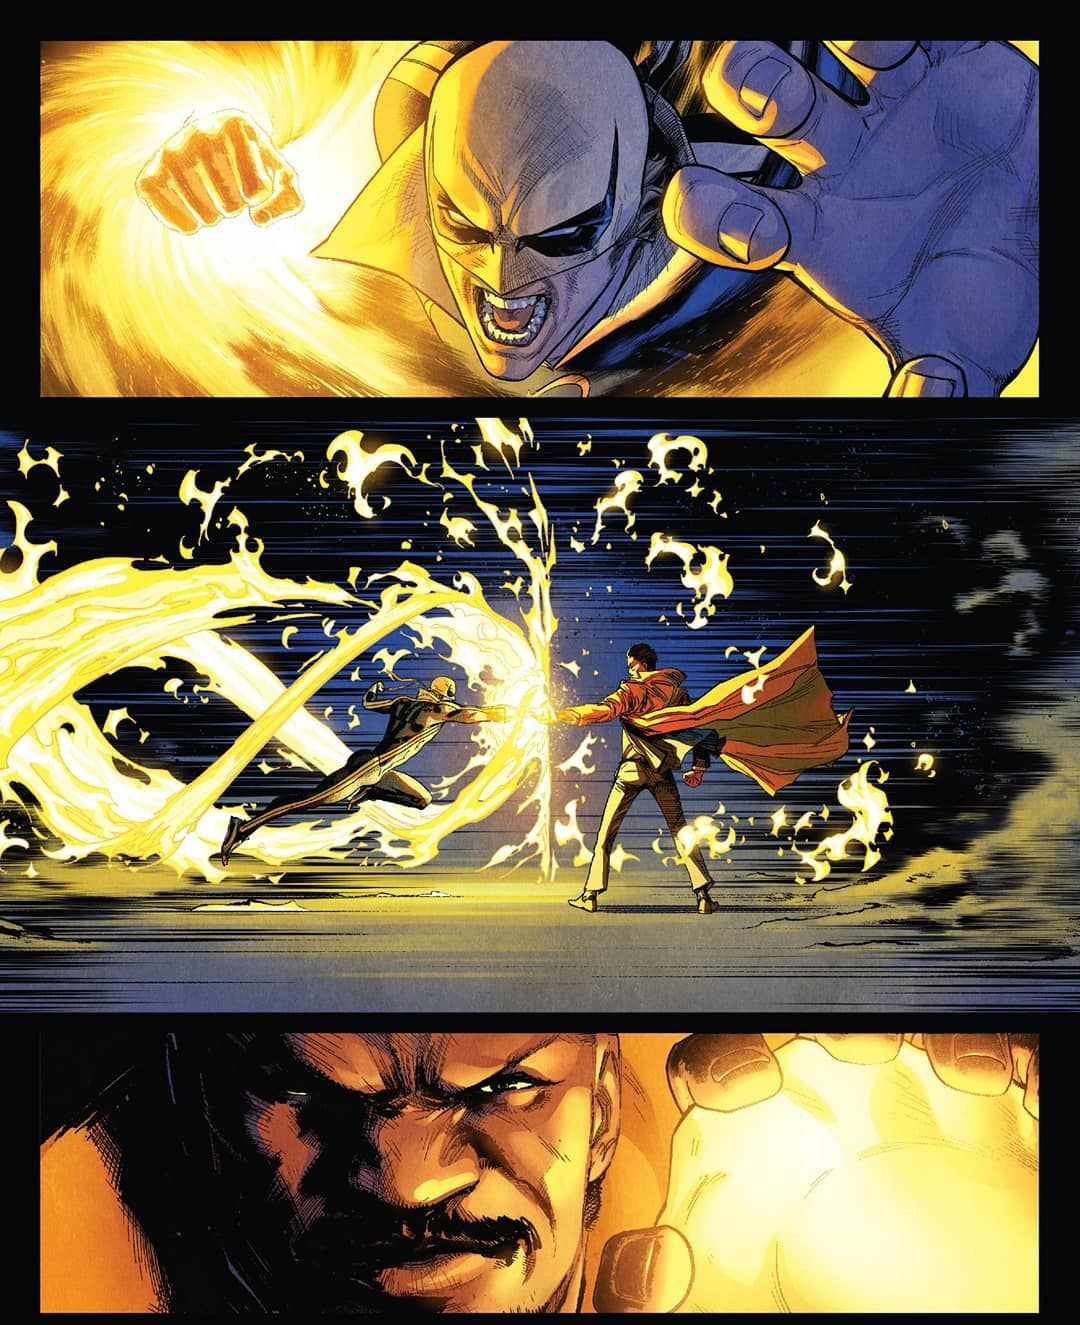 Iron fist vs daken